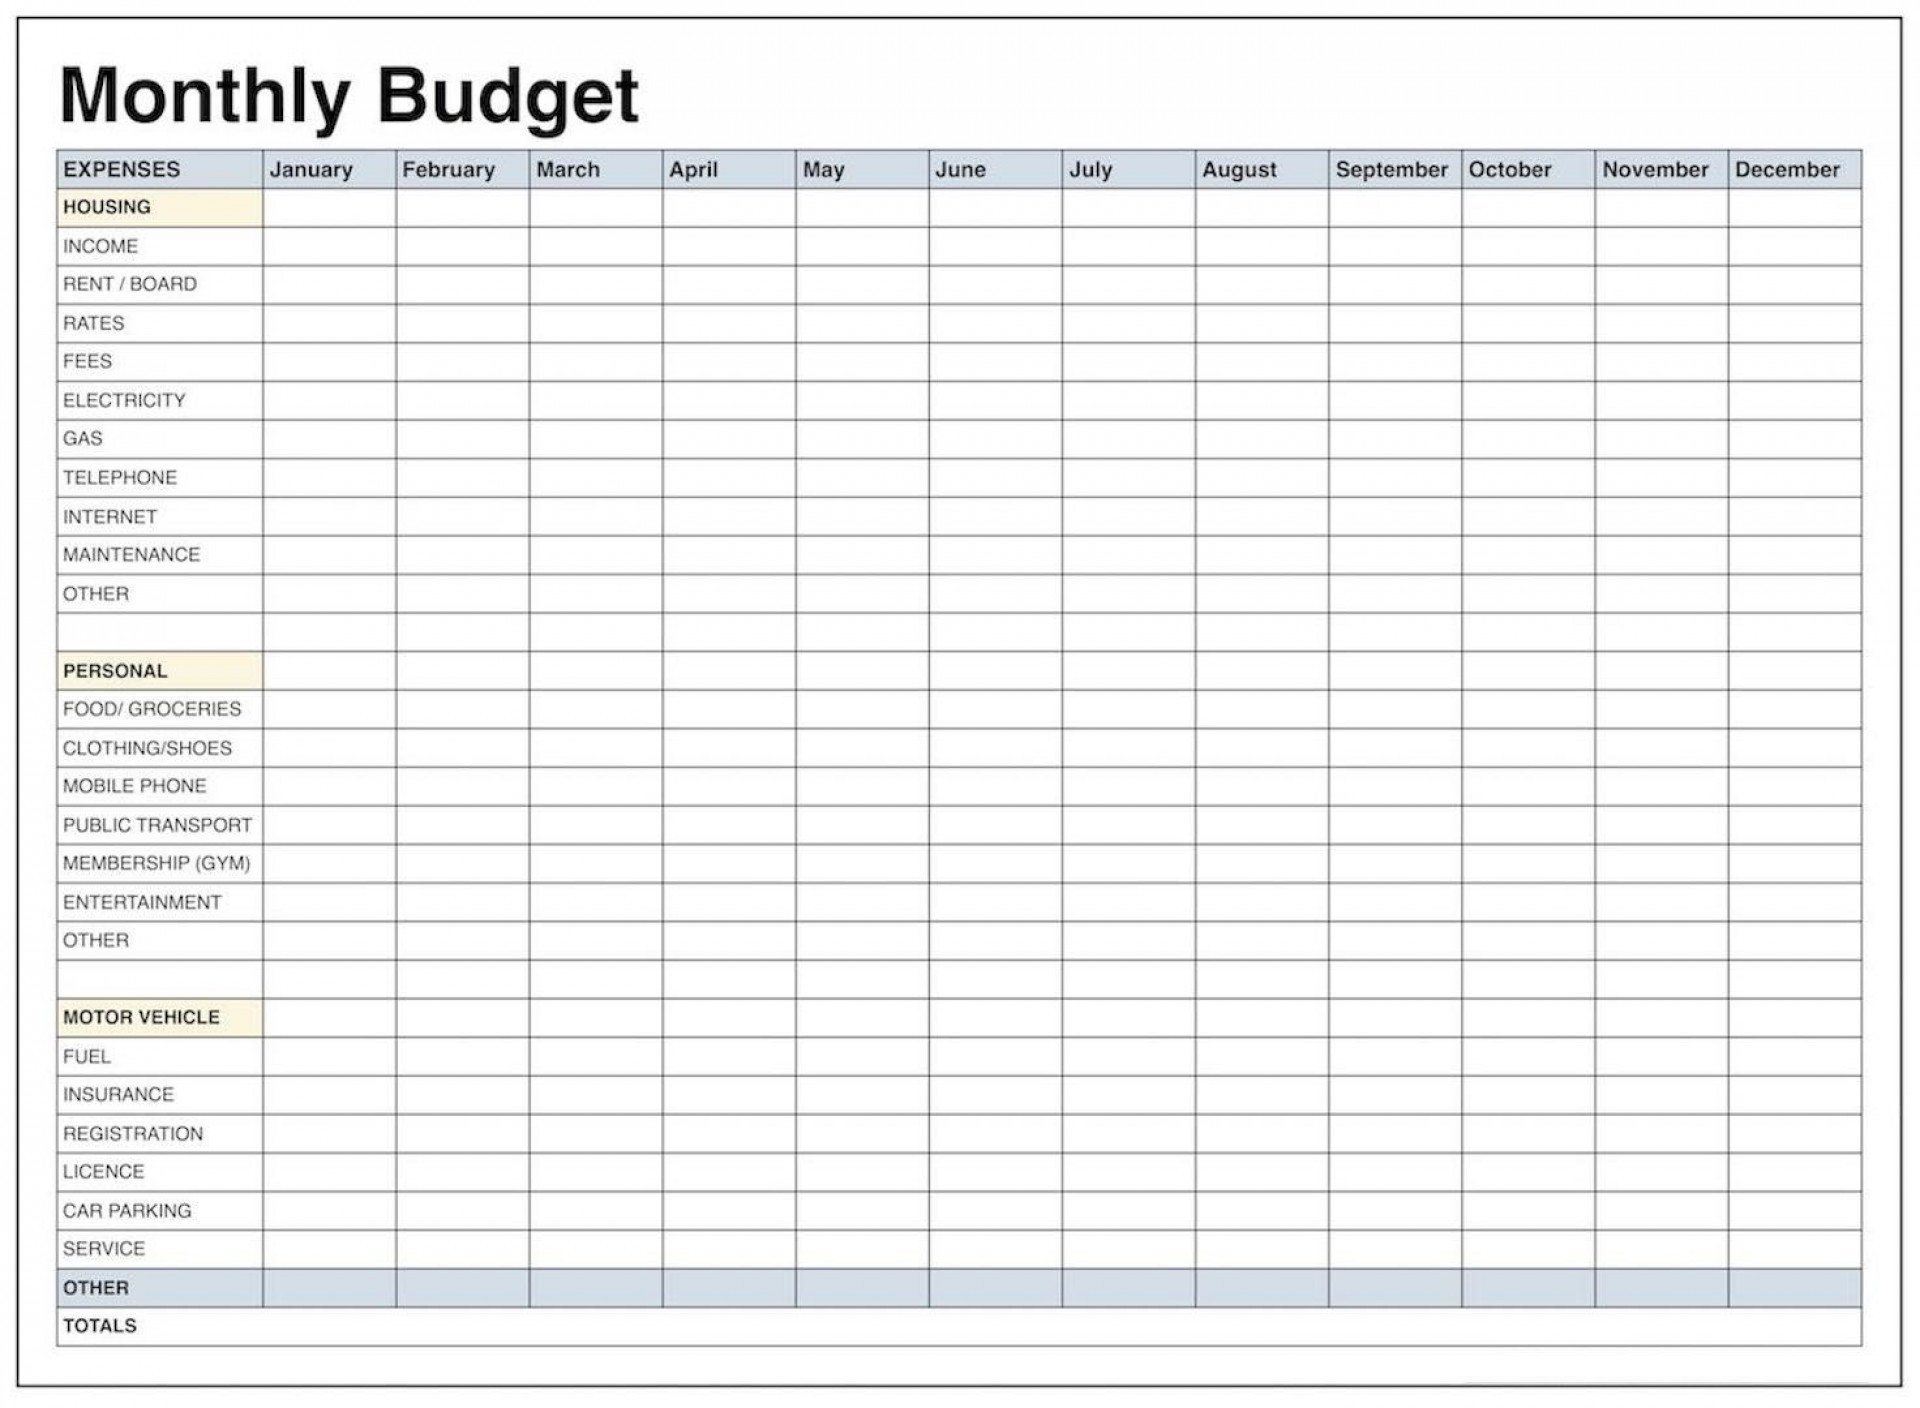 The Student Budget Worksheet Answers